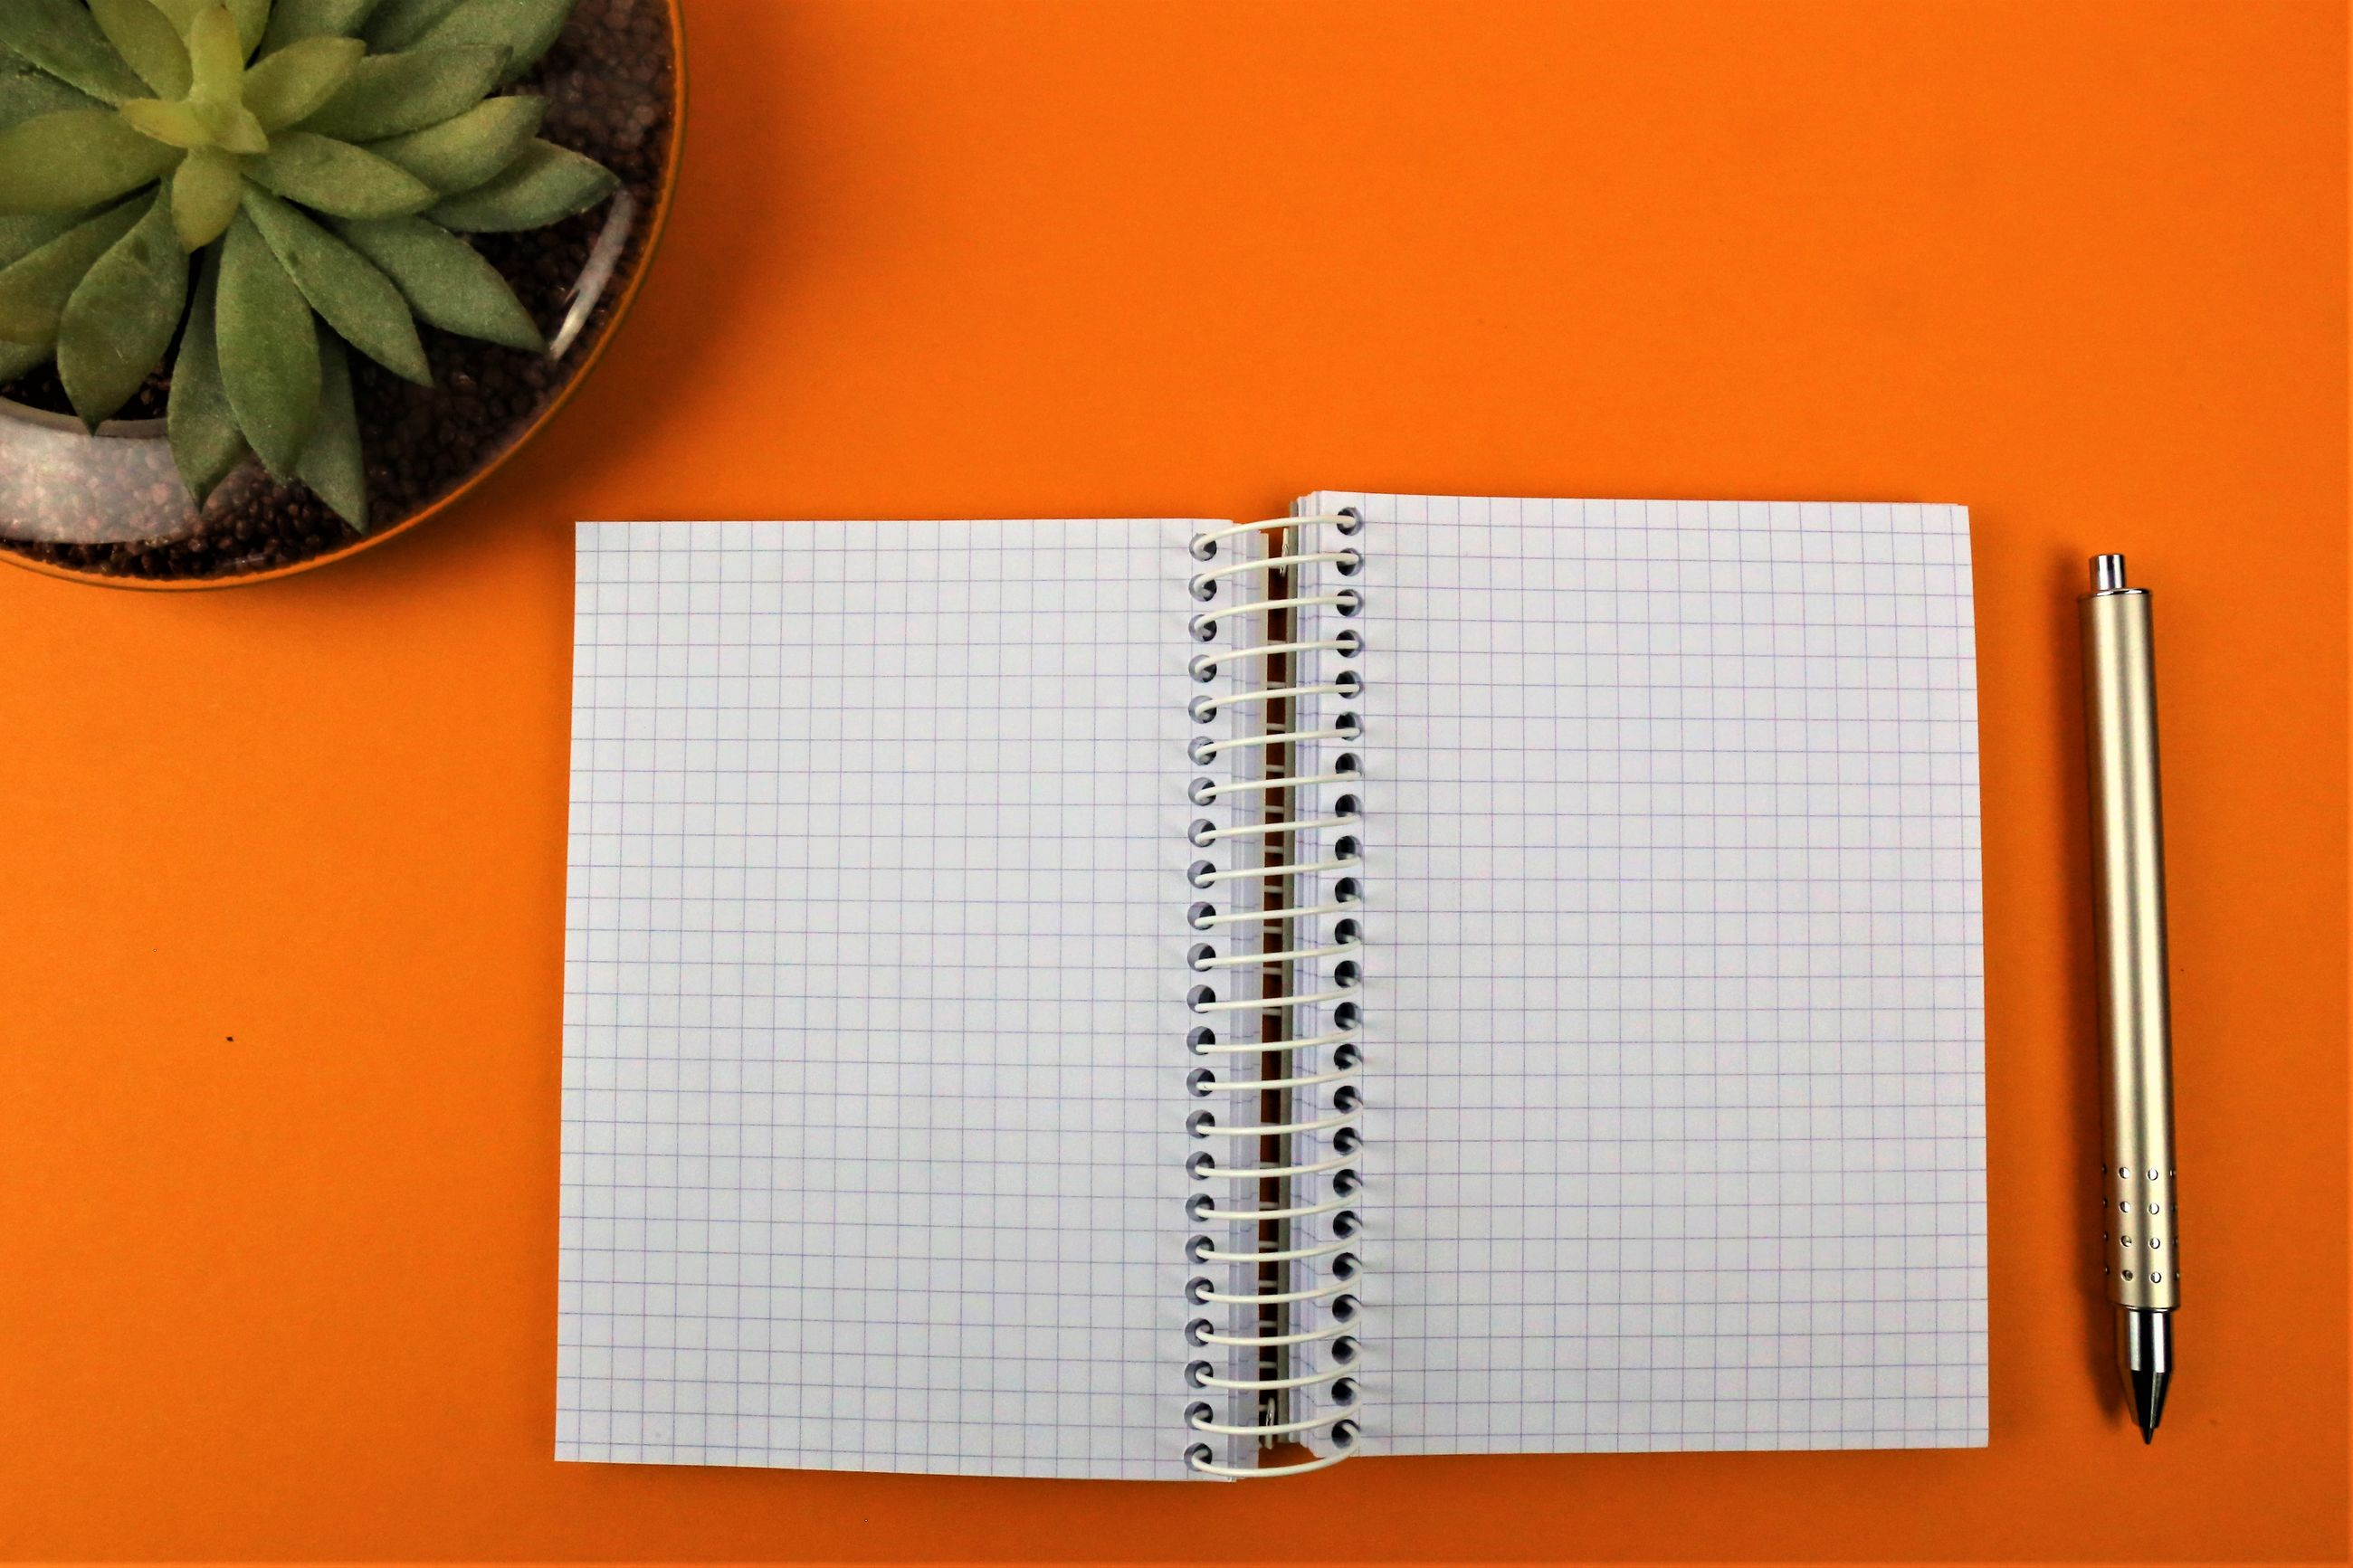 Directly above shot of open spiral notebook amidst pen and potted plant over orange background